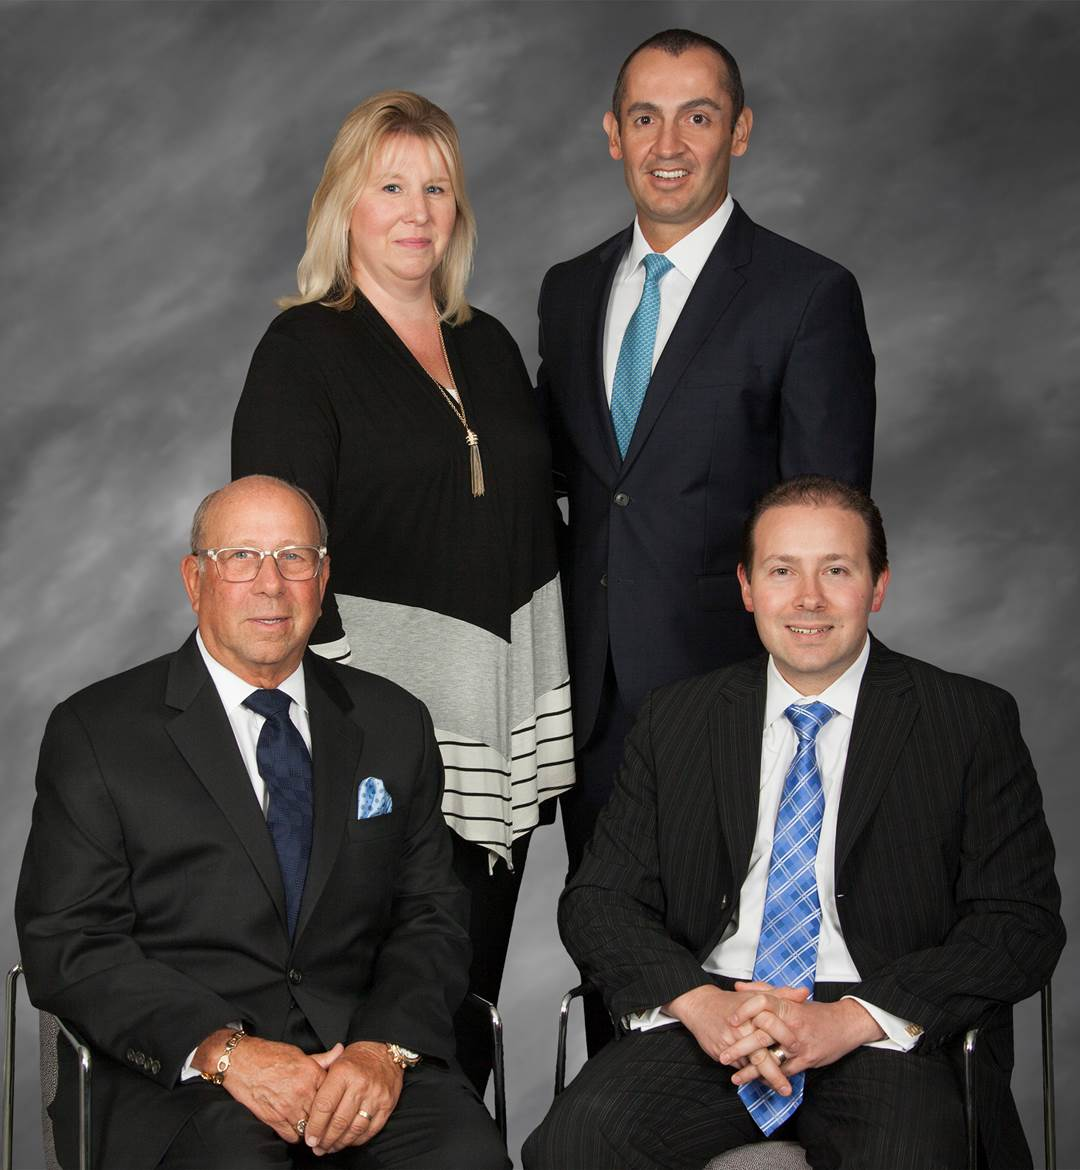 Ringelheim Wealth Management Group Barry Ringelheim, Harris Ringelheim, Brian Fishlinger, Jeanine Sclafani